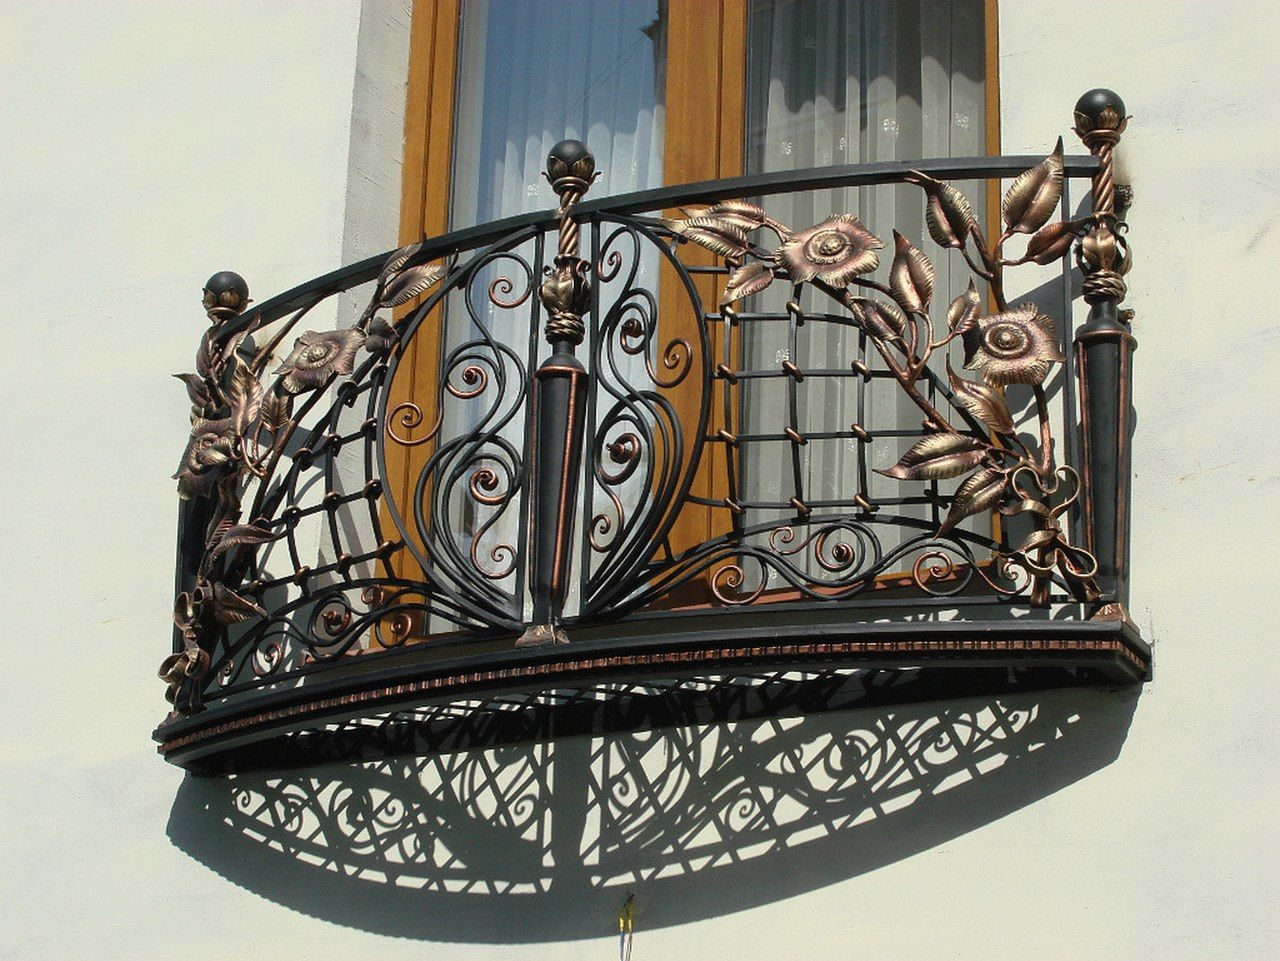 Unusual French Balcony design with forged fence and wood imitating window frame